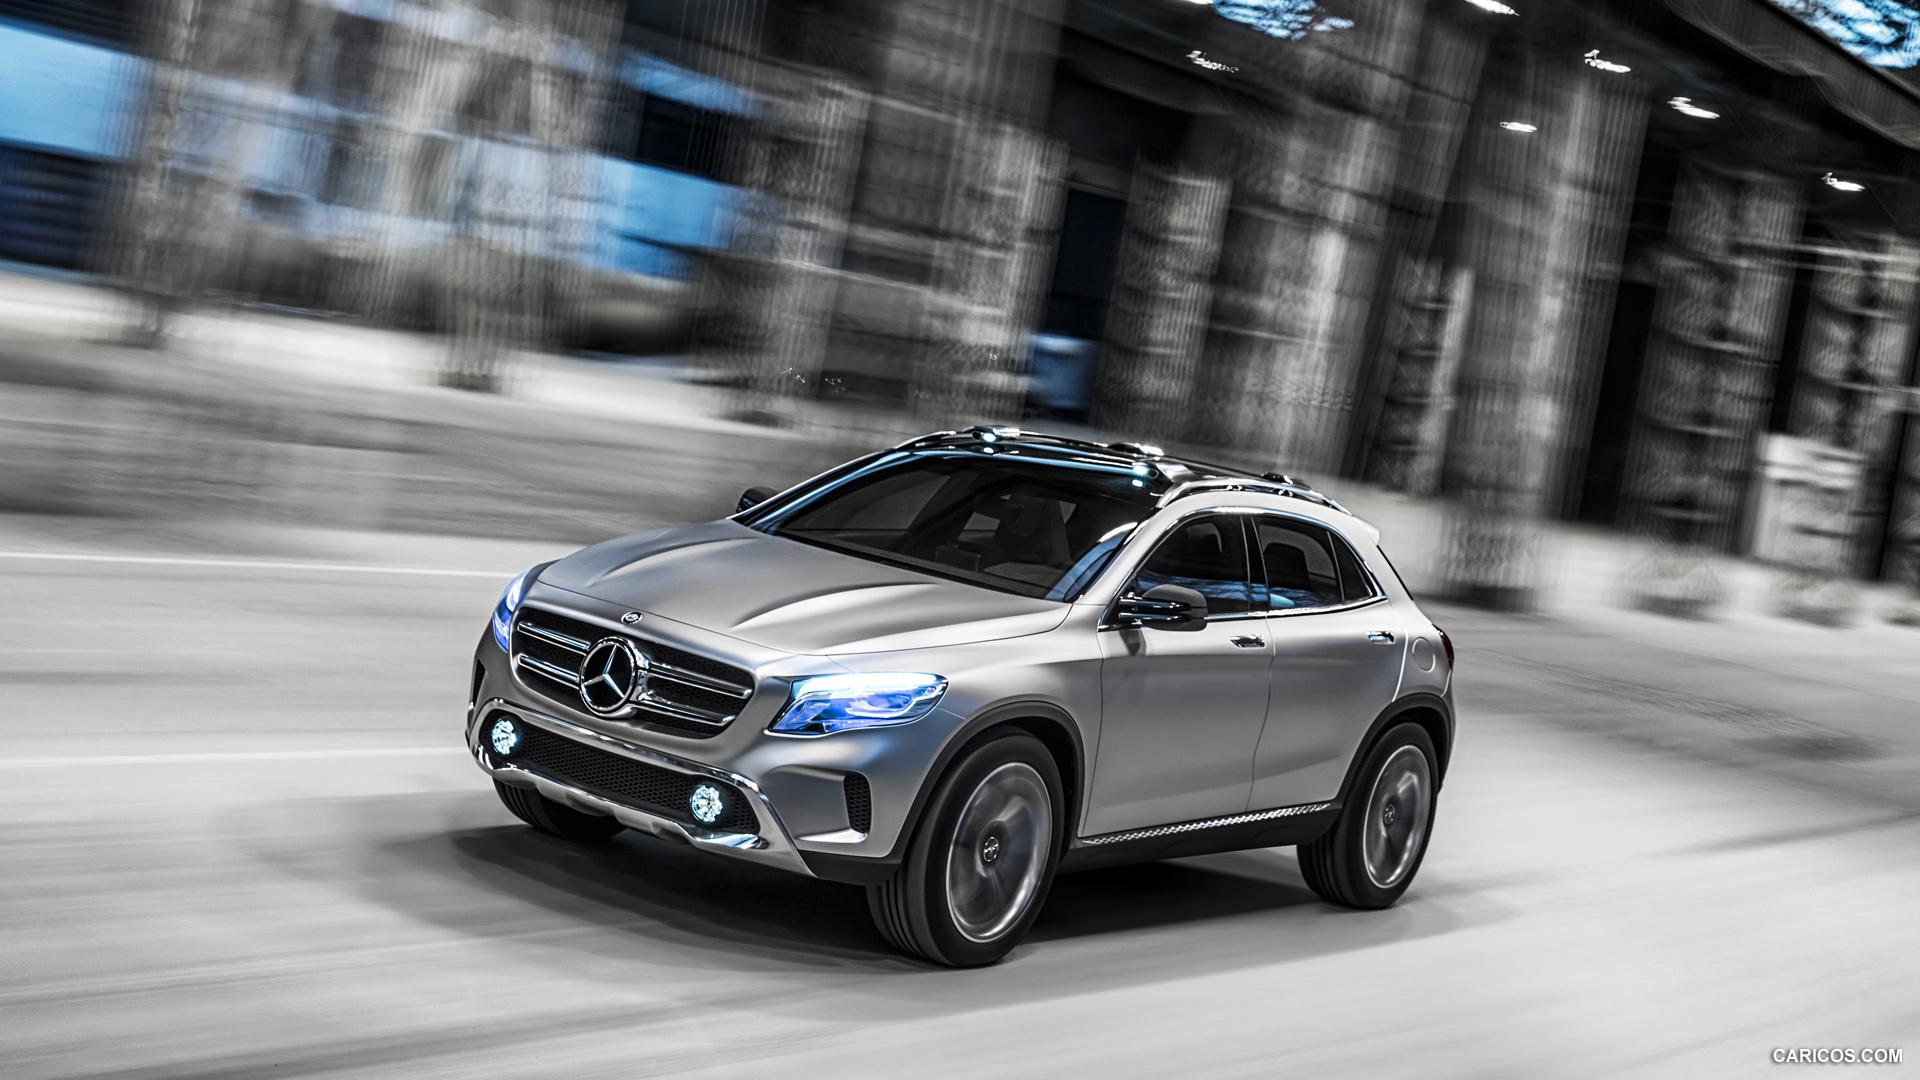 2013 Mercedes-Benz GLA Concept - Front | HD Wallpaper #2